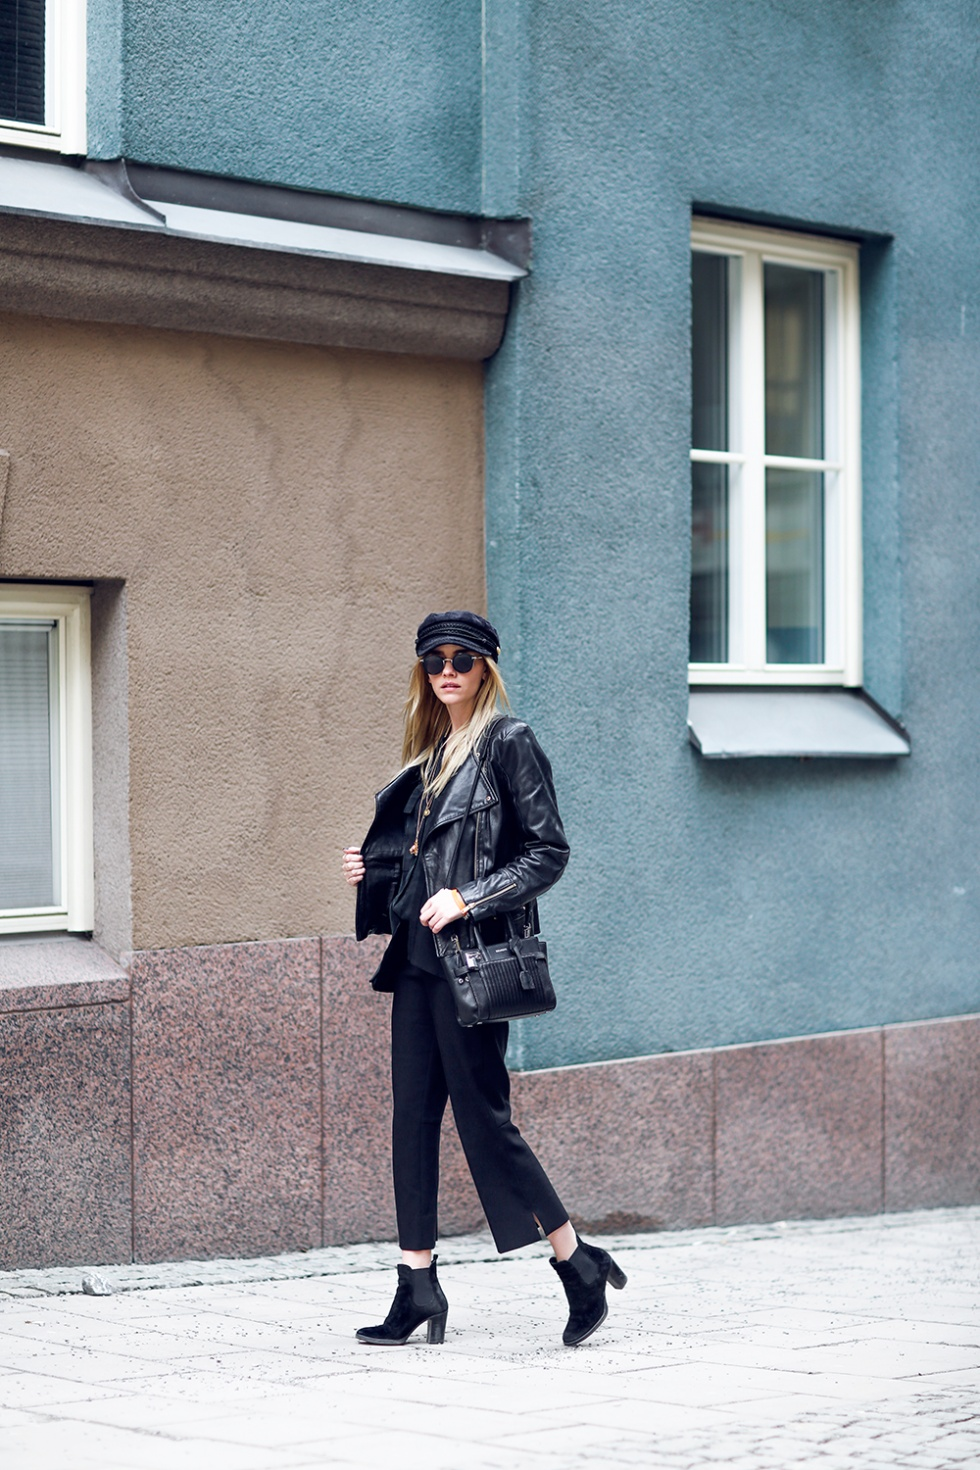 Black on black is the way to go this season! Elsa Ekman wears the style through gorgeous slitted culottes and a shiny leather jacket; we love it! Jacket: Mango, Shirt: Zara, Blazer: Scotch & Soda, Trousers: Espirit, Shoes: Zalando.